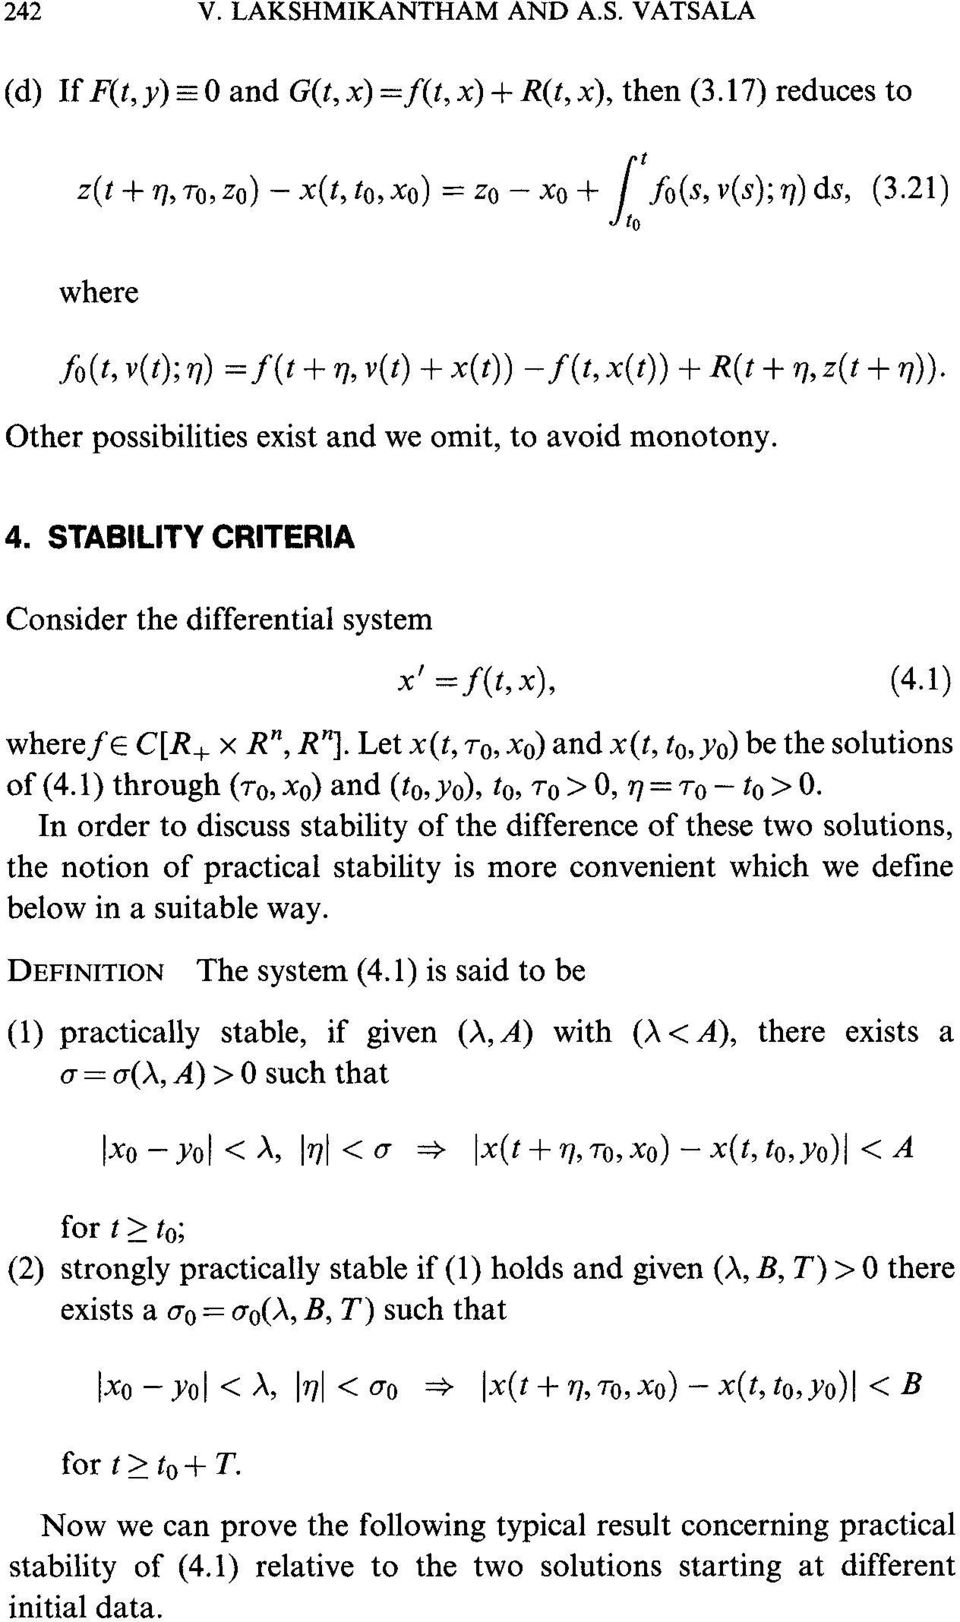 STABILITY CRITERIA Consider the differential system x =f(t,x), (4.1) wherefe C[R+ x R n, Rn]. Let x(t, 7-0, Xo) and x(t, to, Yo) be the solutions of (4.